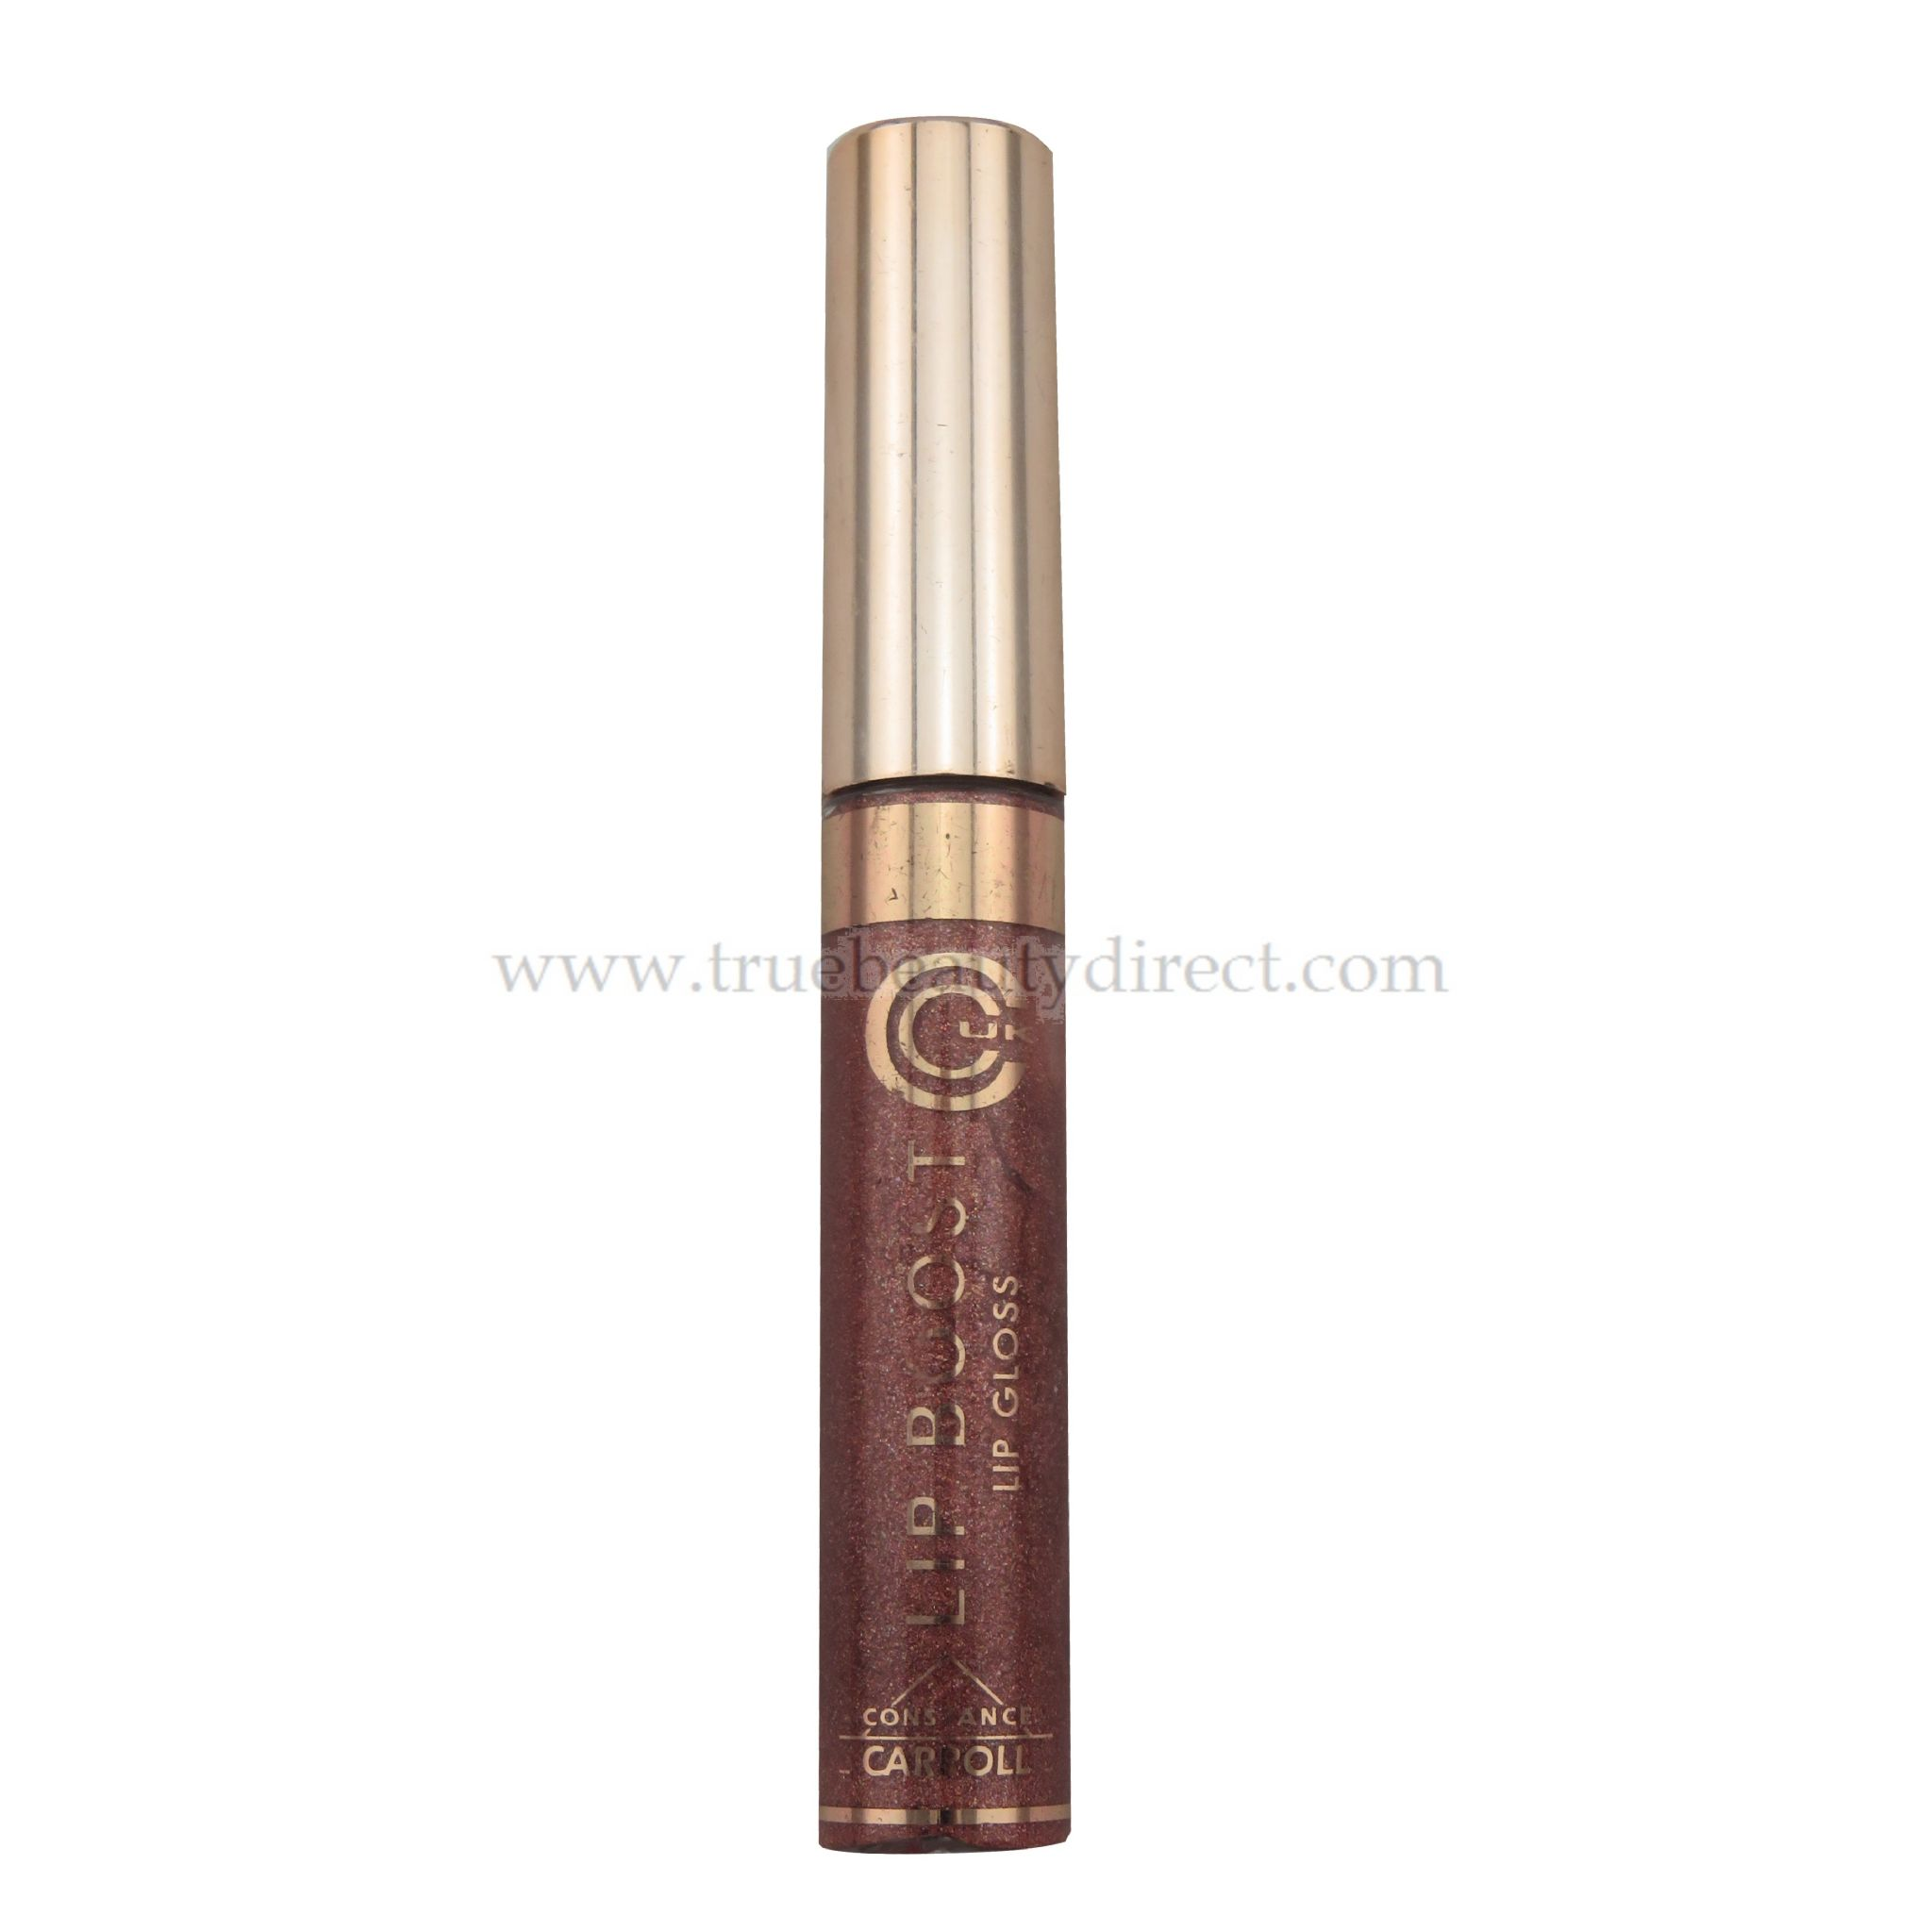 CONSTANCE CARROLL LIP BOOST LIP GLOSS